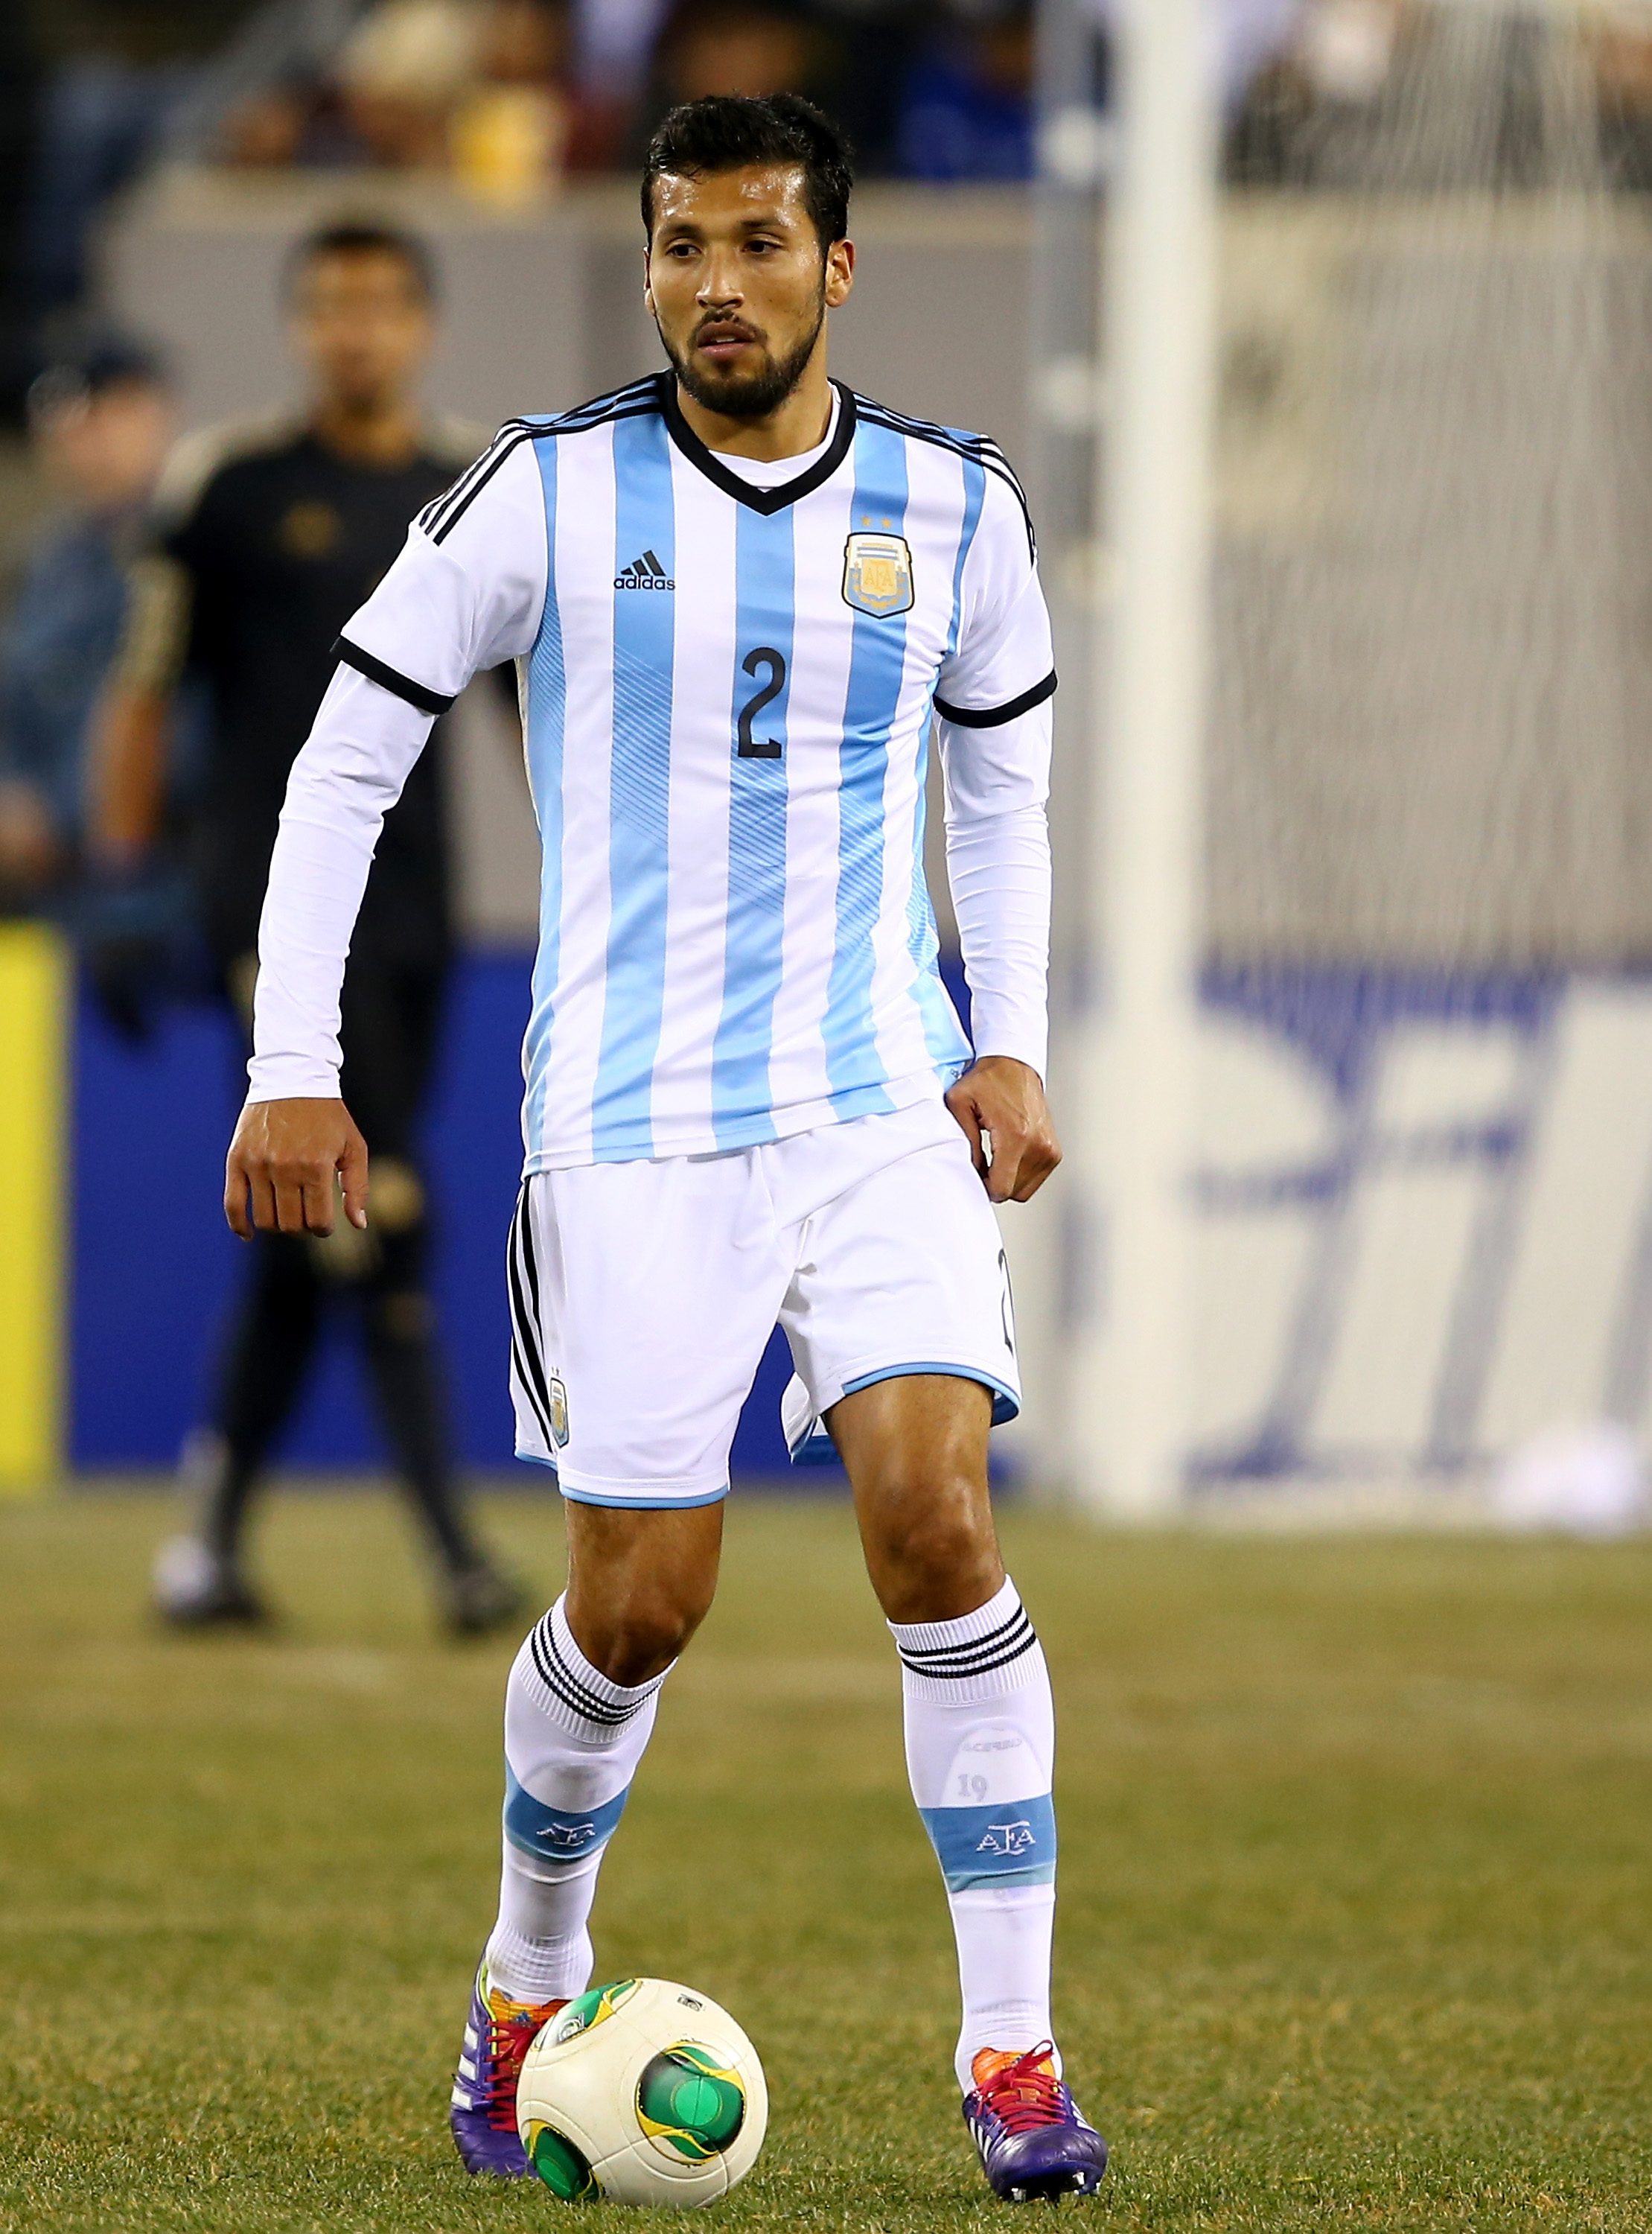 Manchester United close to finally signing Benfica defender Ezequiel Garay